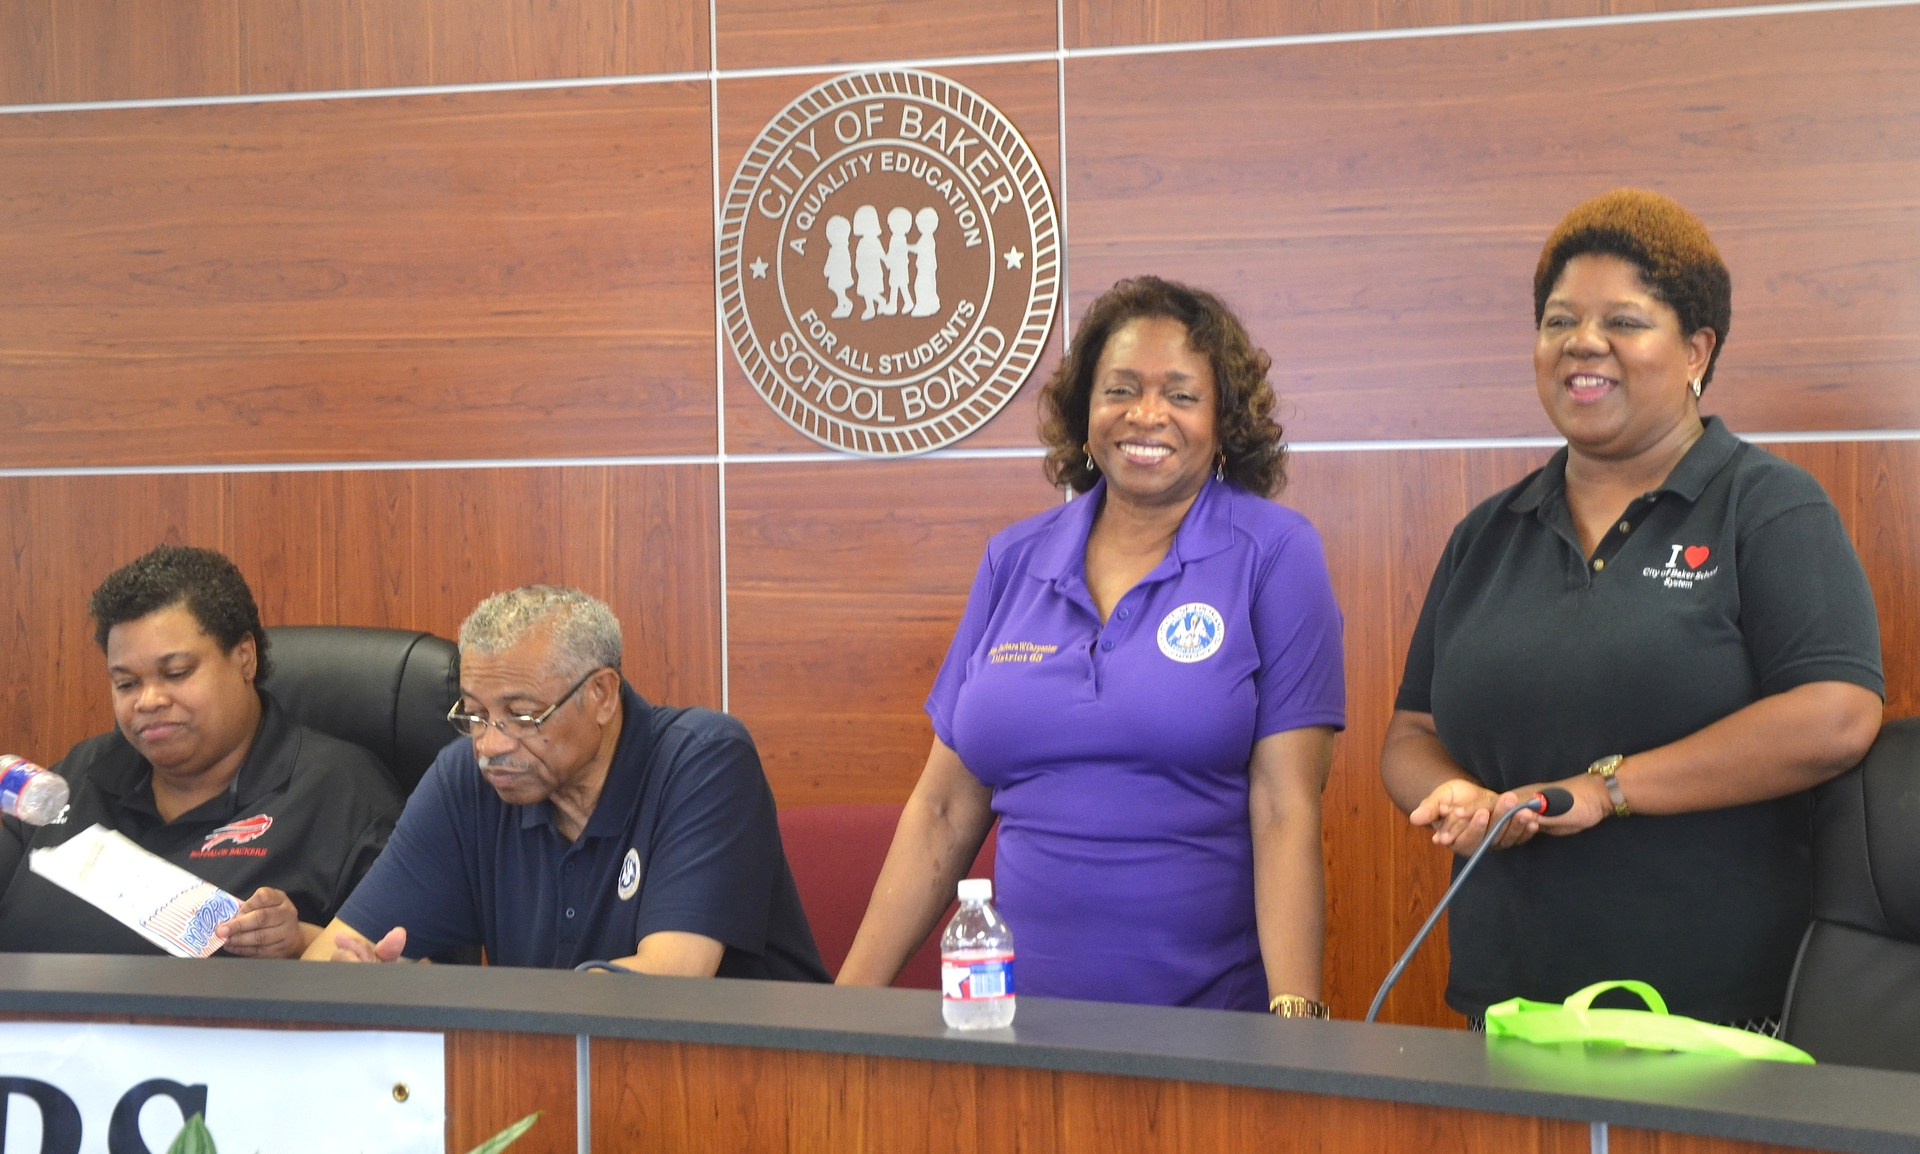 A photo of some of the organizers of the 2017 Back To School Expo